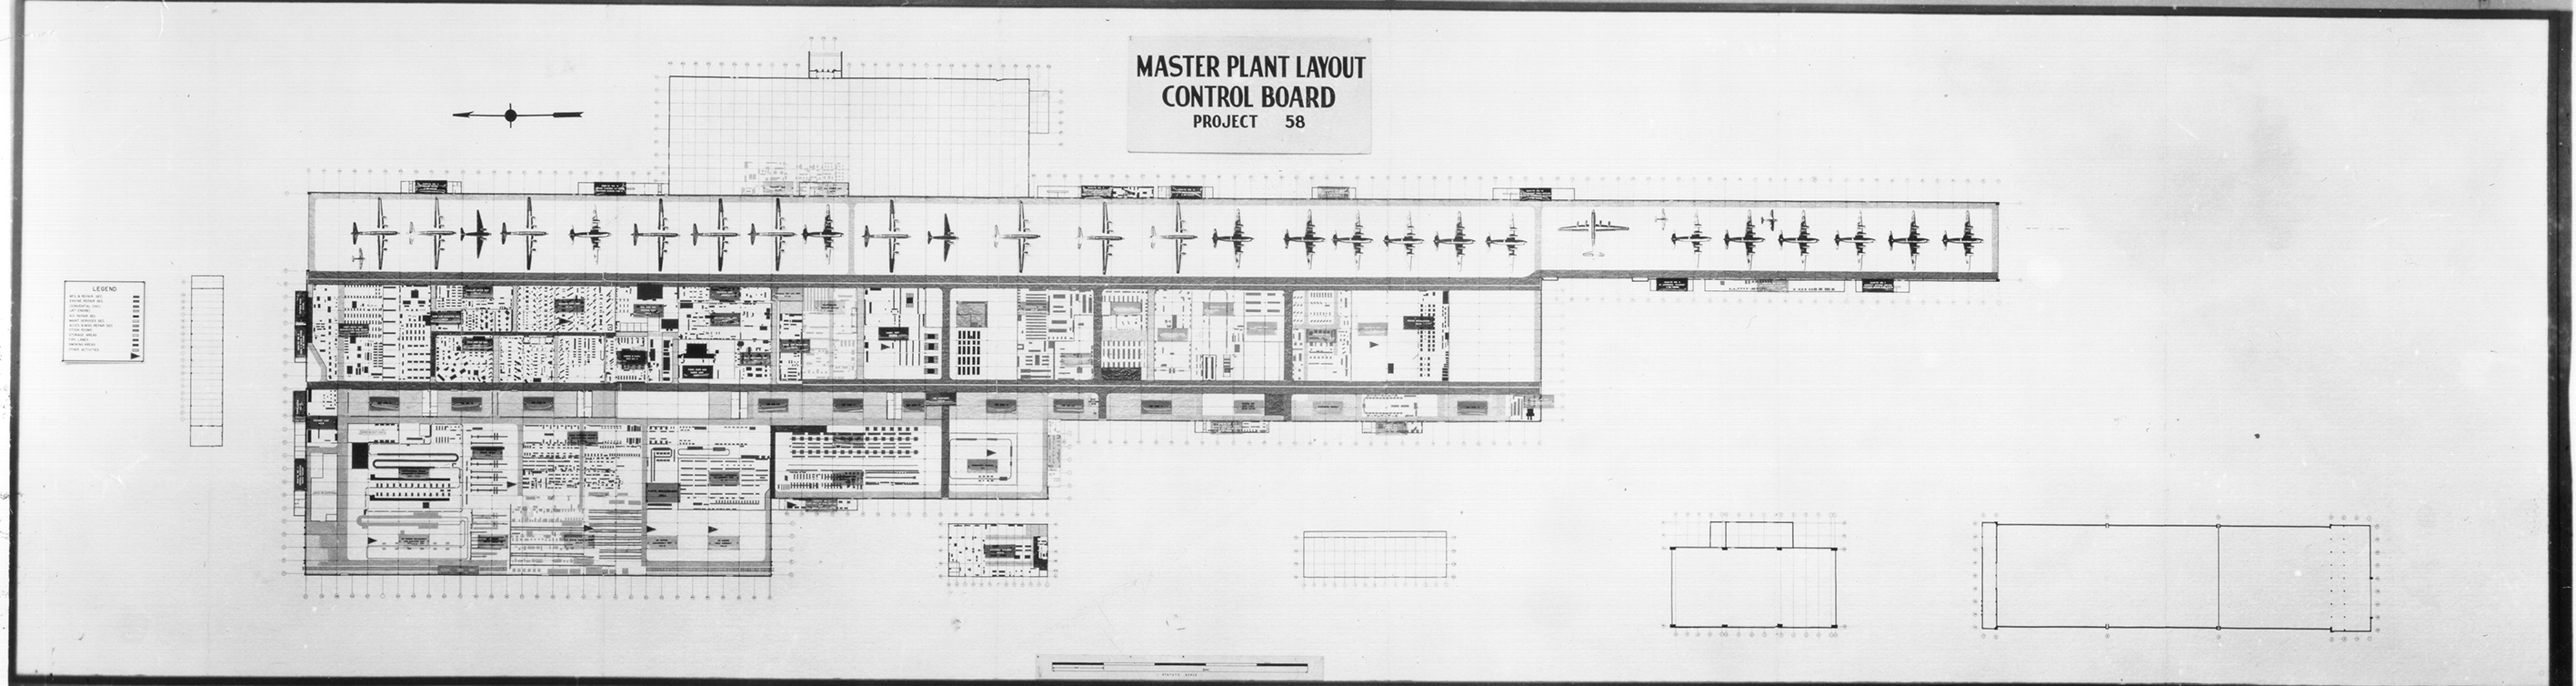 Bldg 3001 Map Of Tinker on map of keesler, map of hickam, map of kadena, map of lackland, map of hanscom, map of macdill, map of royal road, map of mcchord, map of incirlik, map of alchemist,